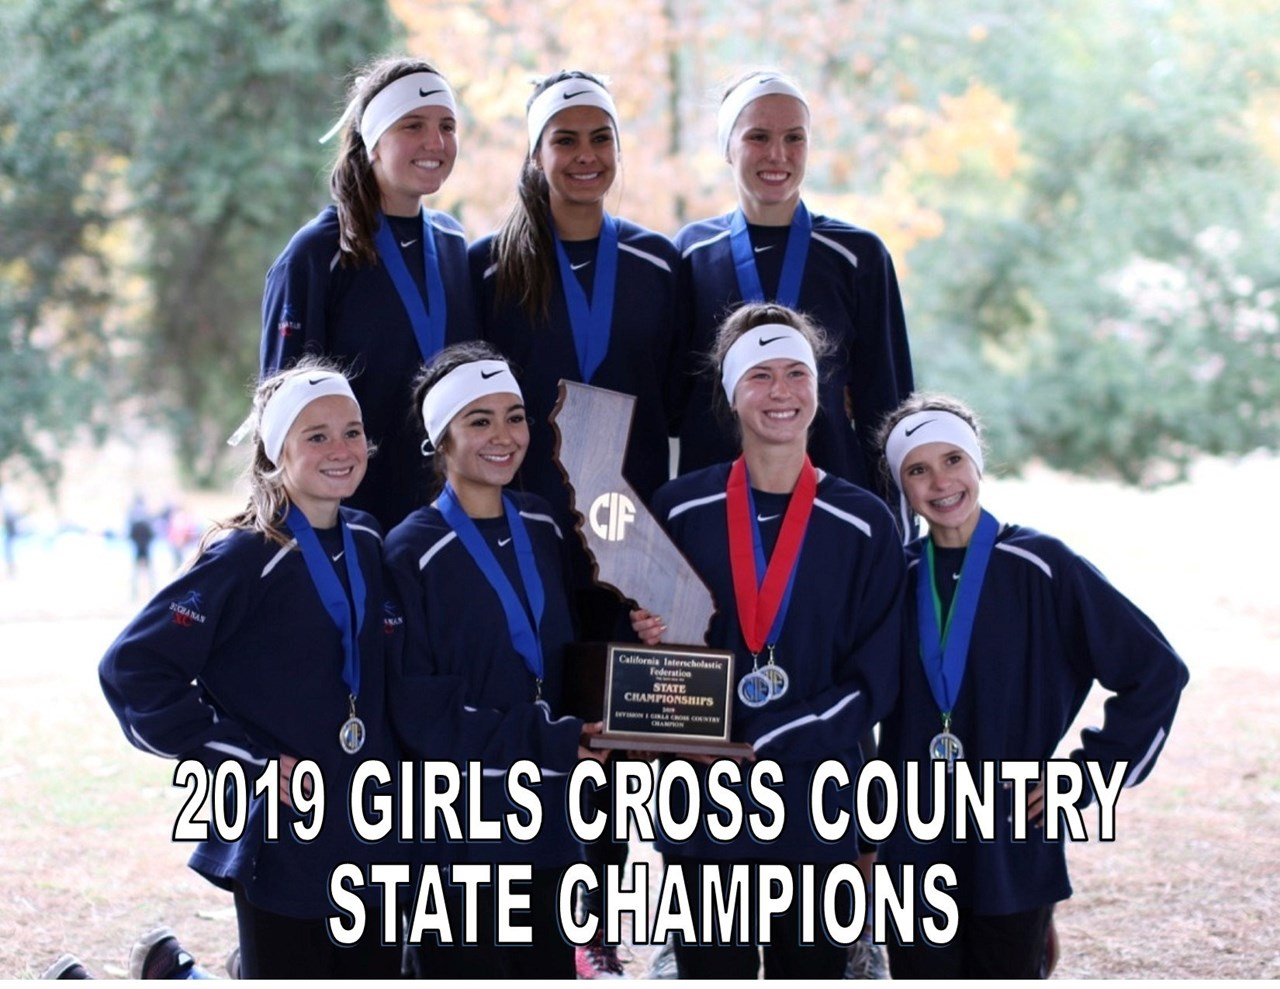 2019 Cross Country State Champions